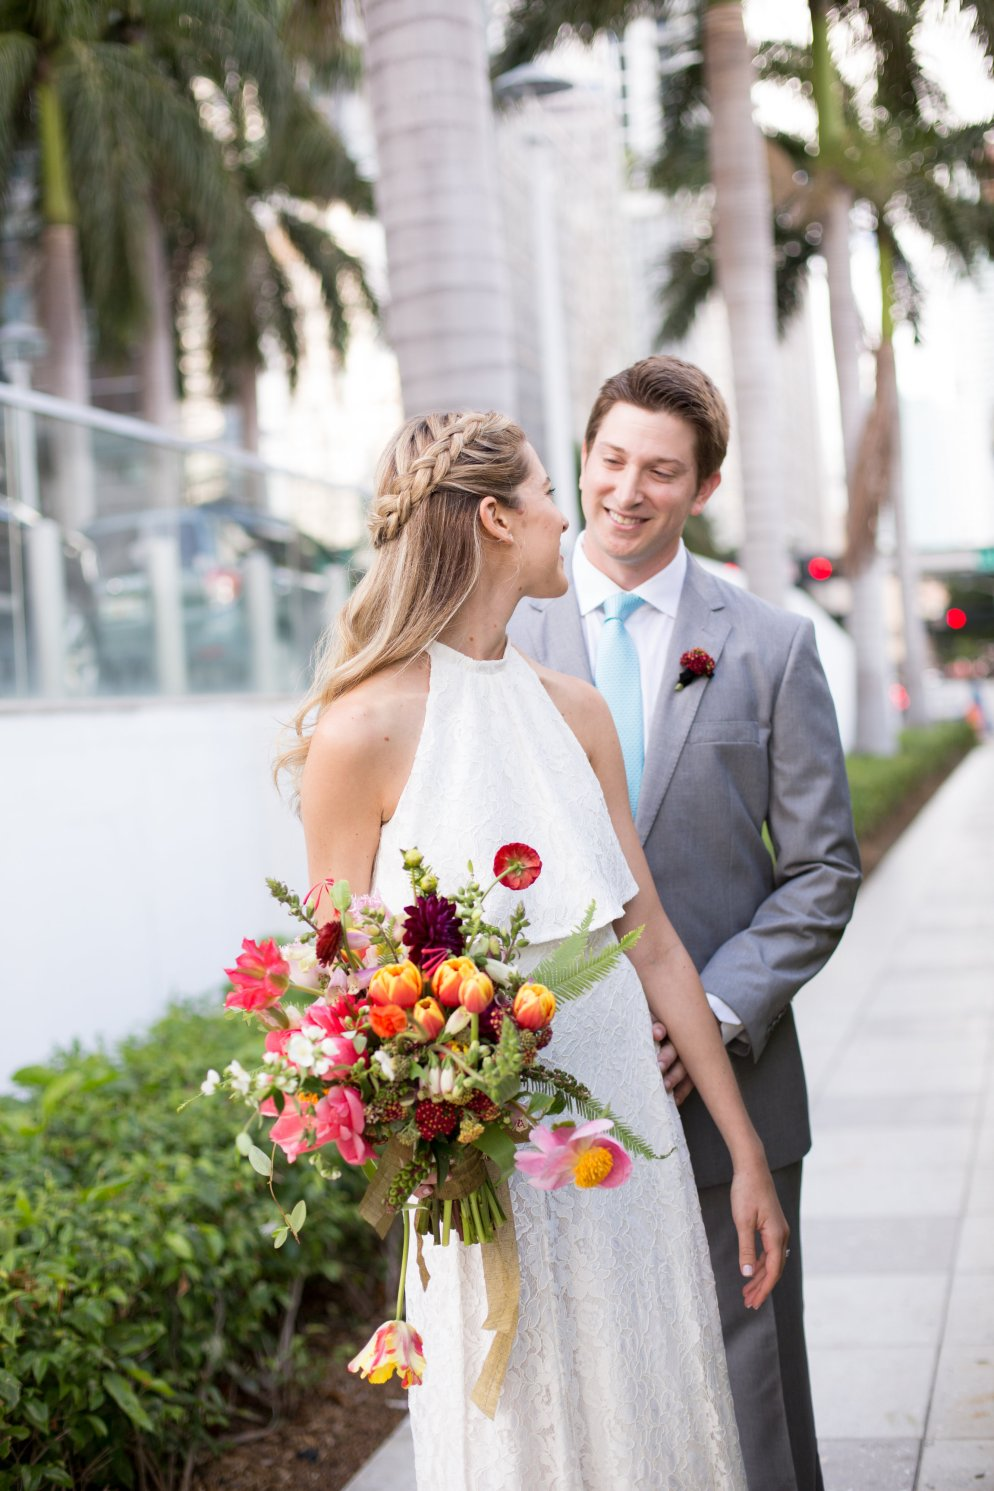 View More: http://heatherfunkj.pass.us/marissa-and-matt-wedding